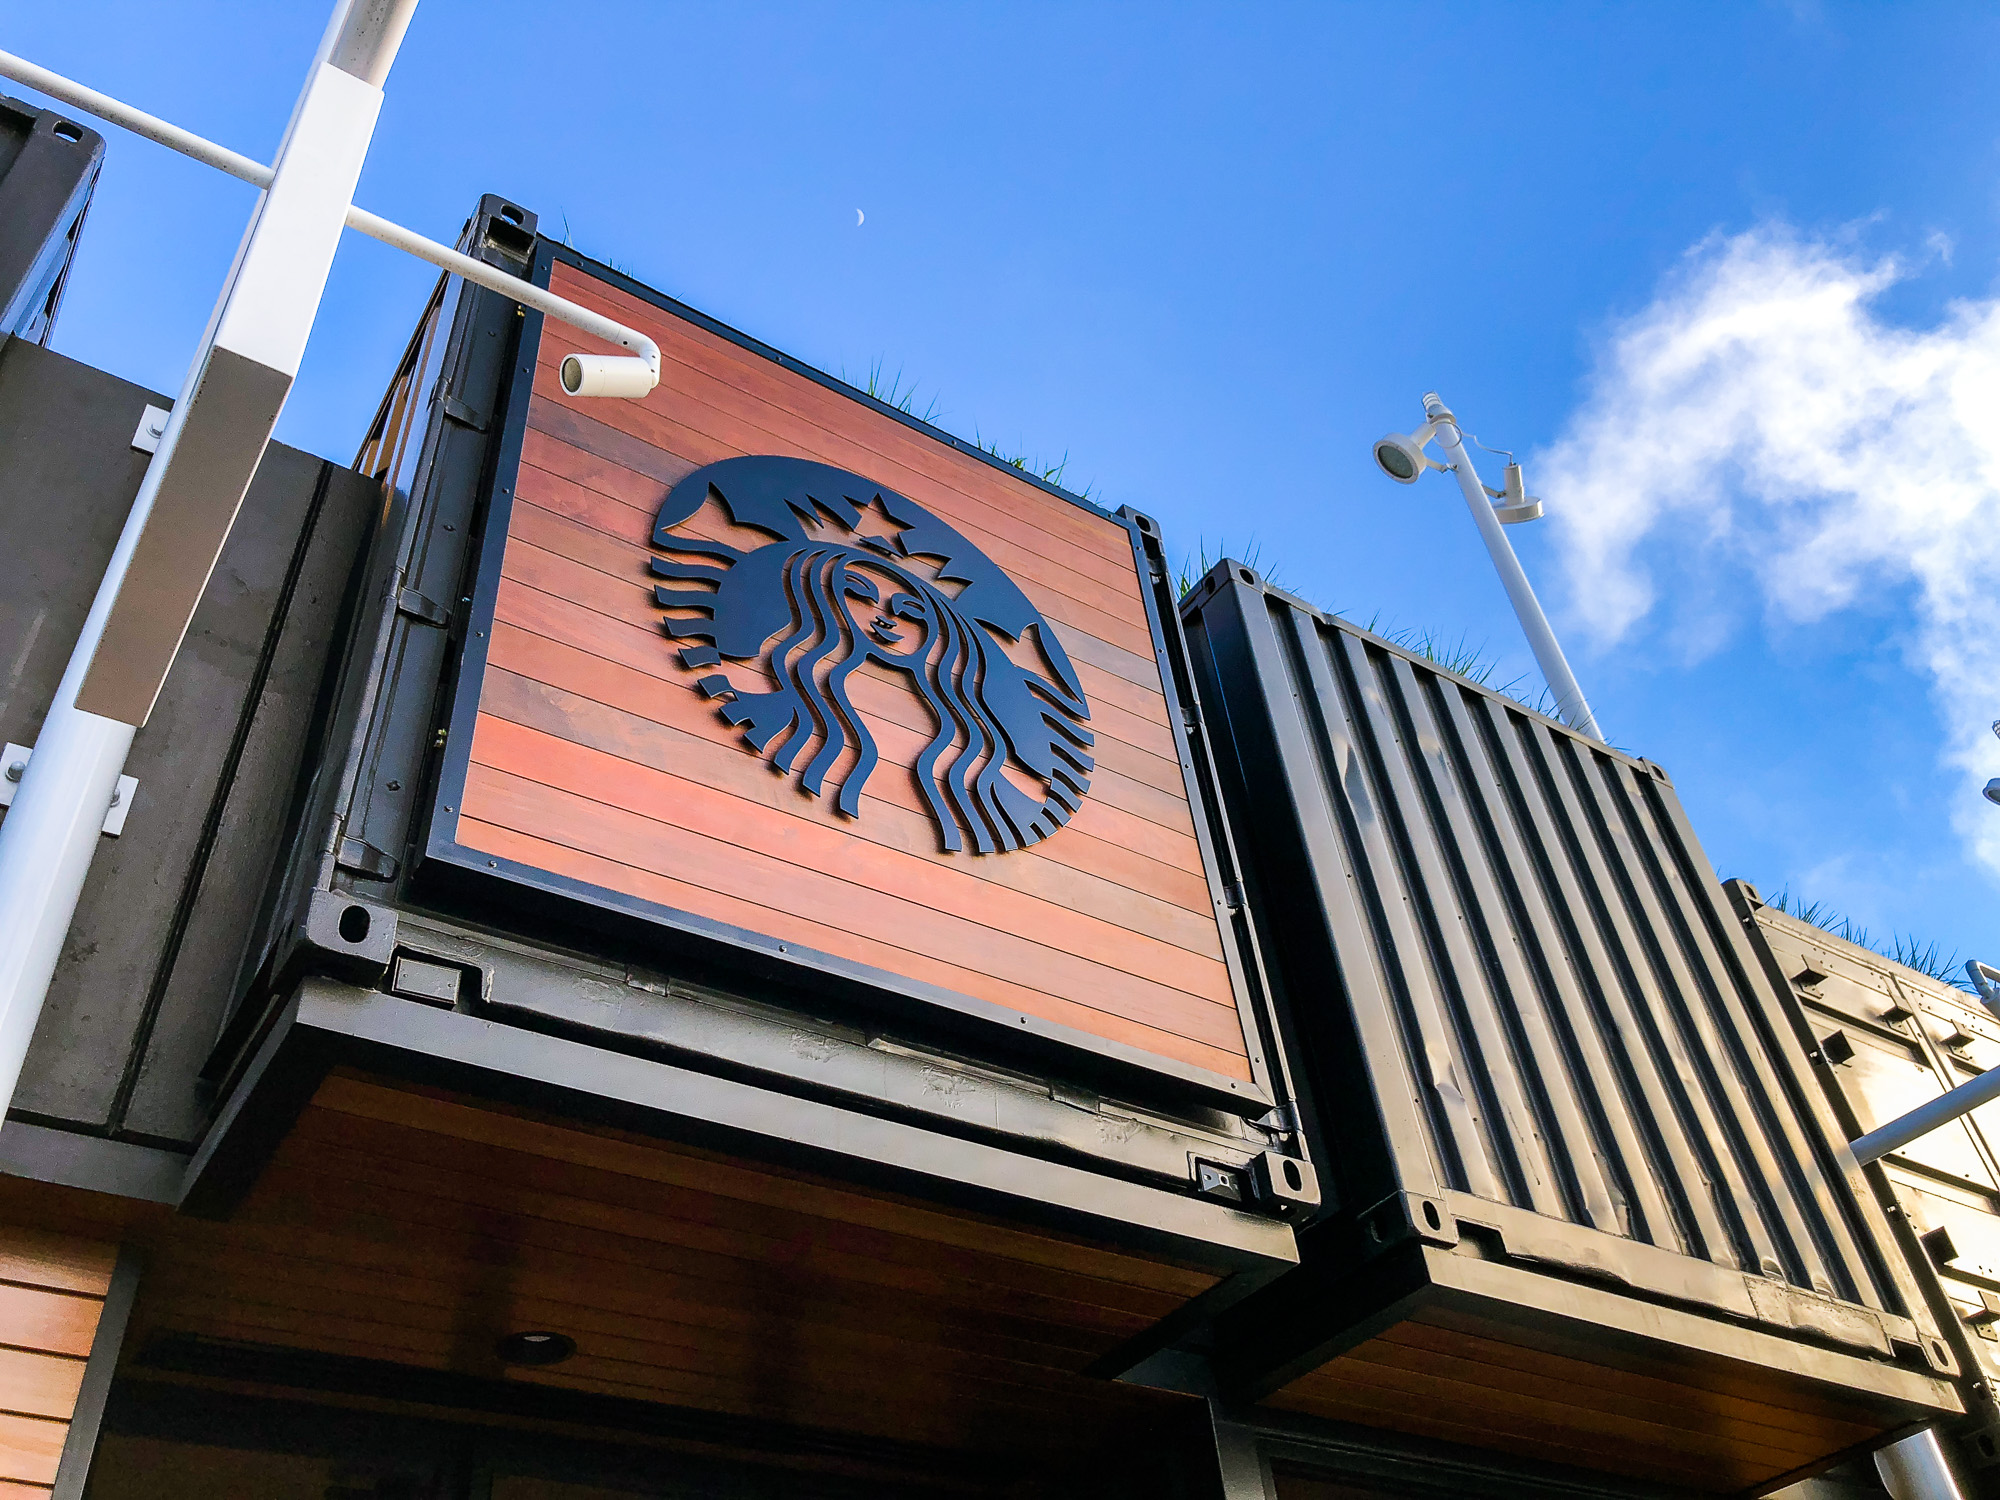 Starbucks large wood slat container sign